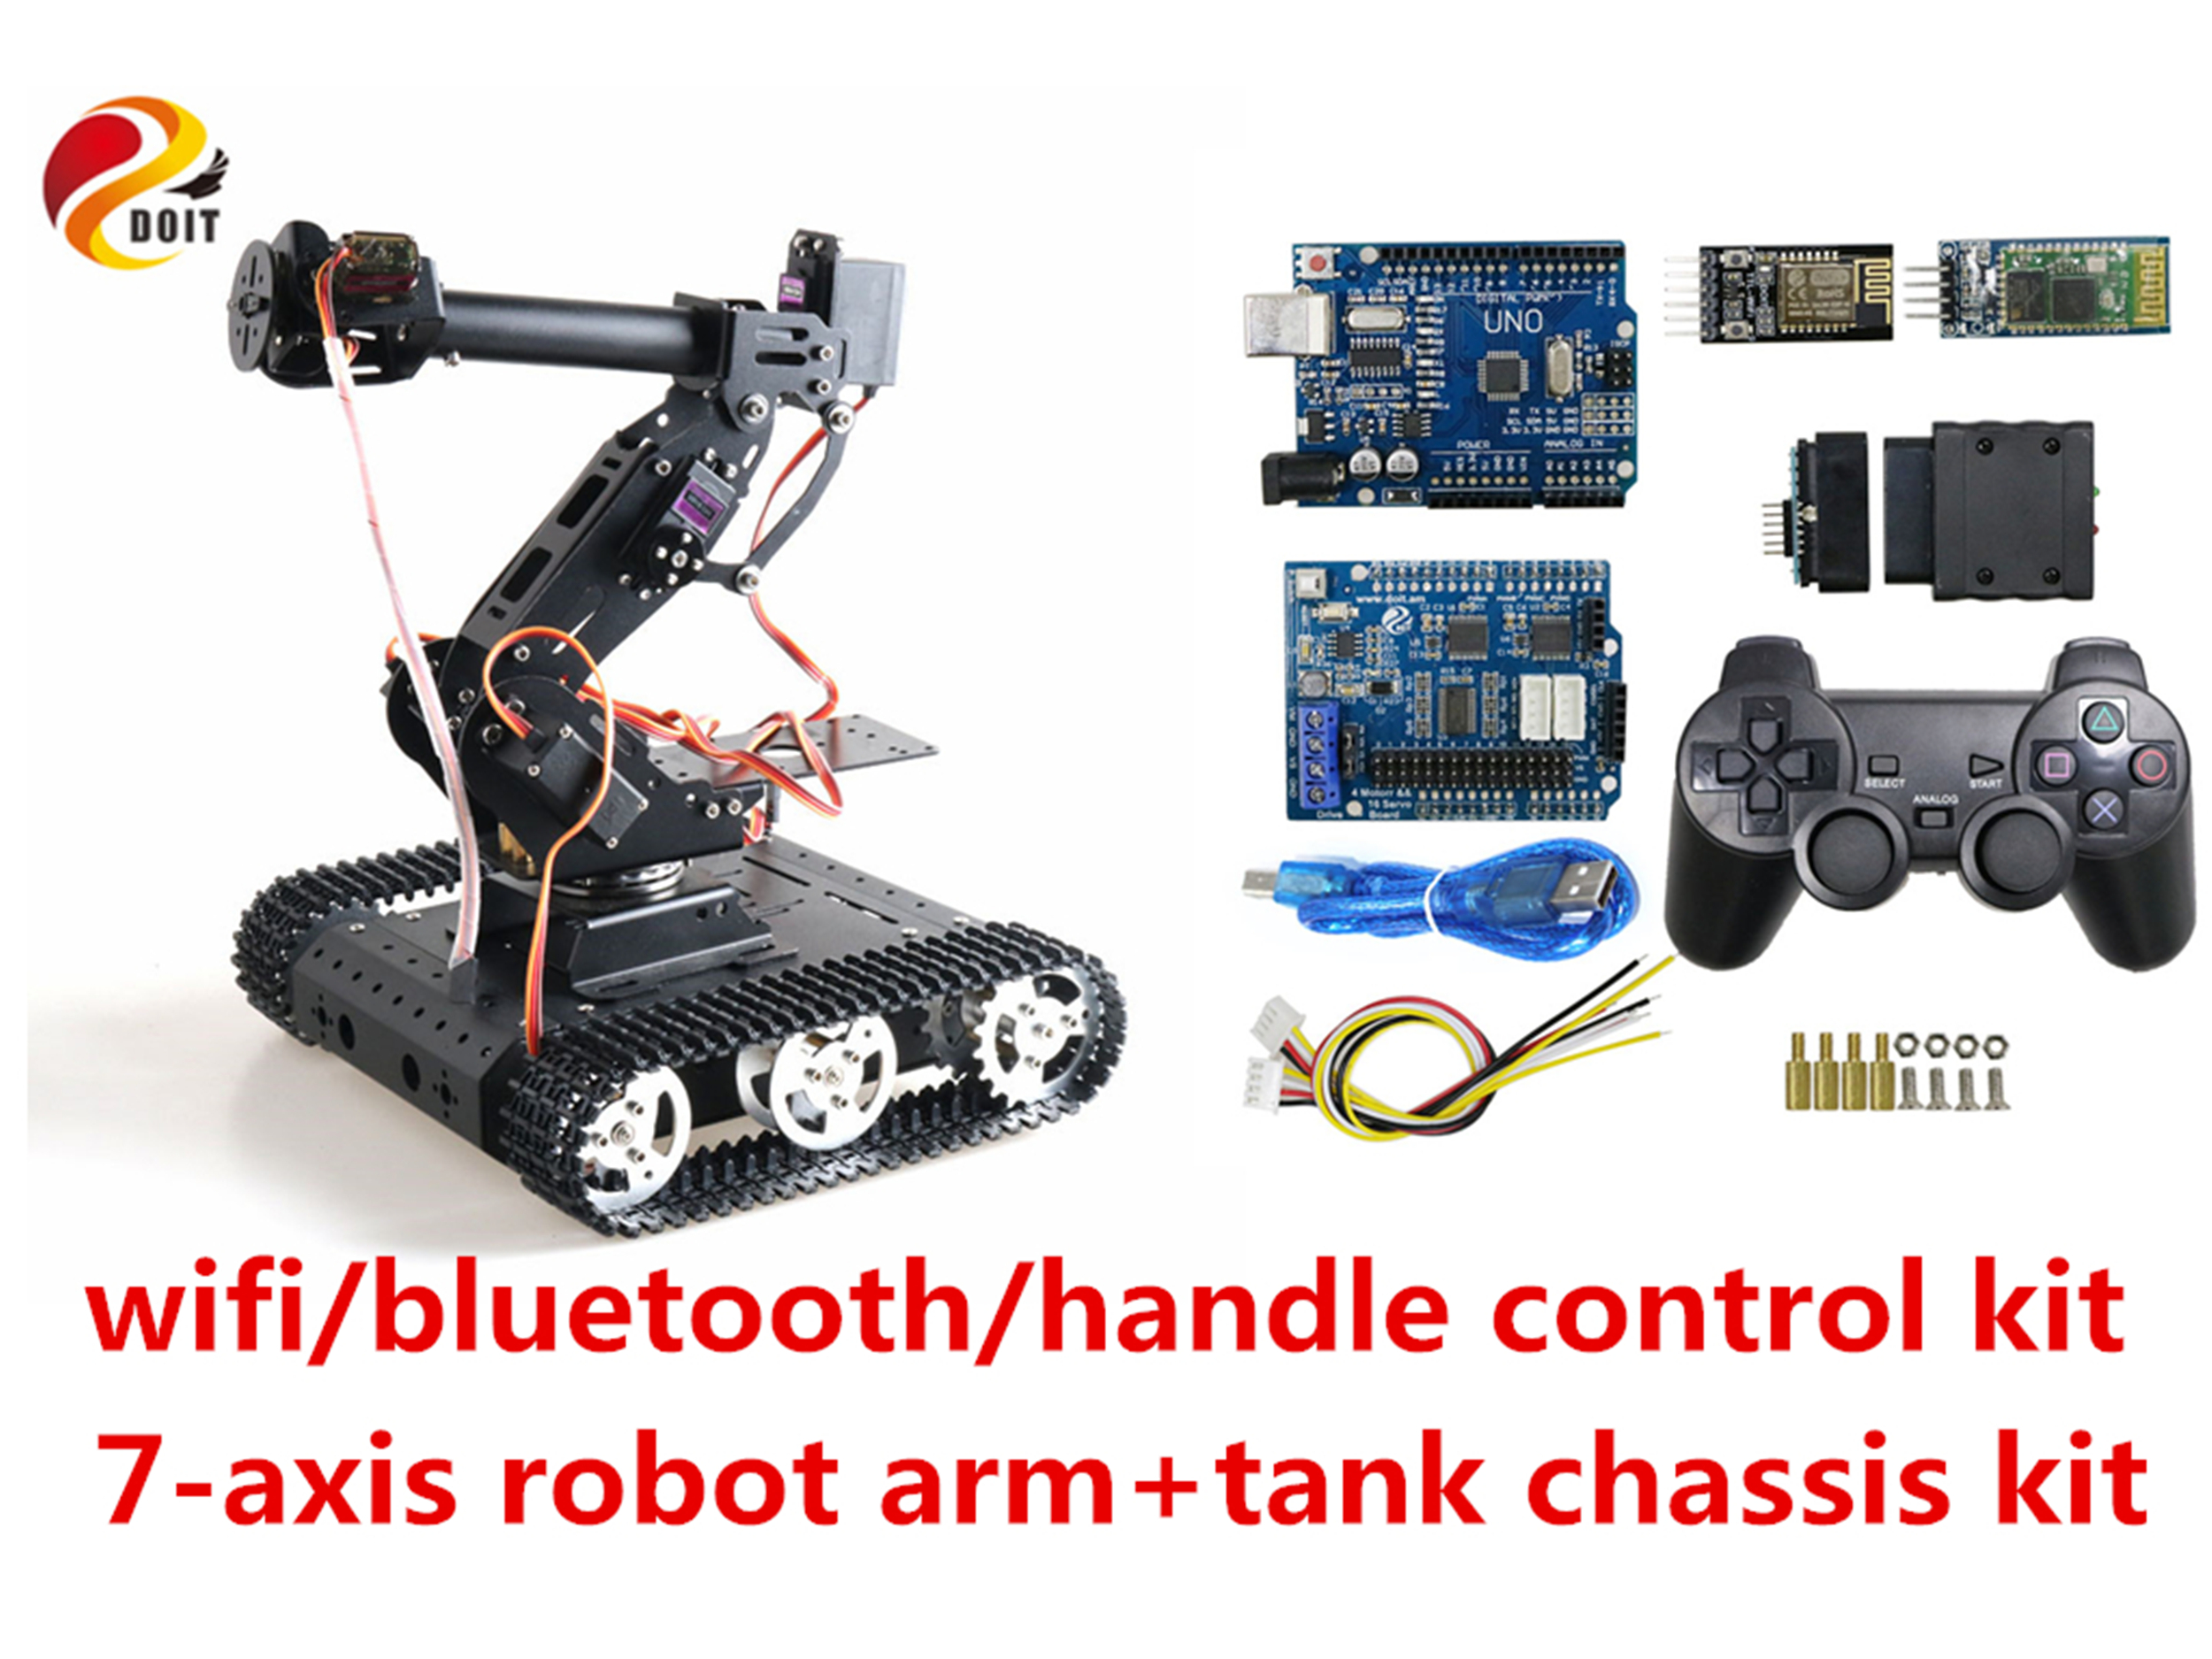 SZDOIT Wifi/Bluetooth/Handle Control 7DOF Vehicle Robot Full Metal 7-axis Robot Arm + TC100 Tank Chassis Kit Servos for Arduino